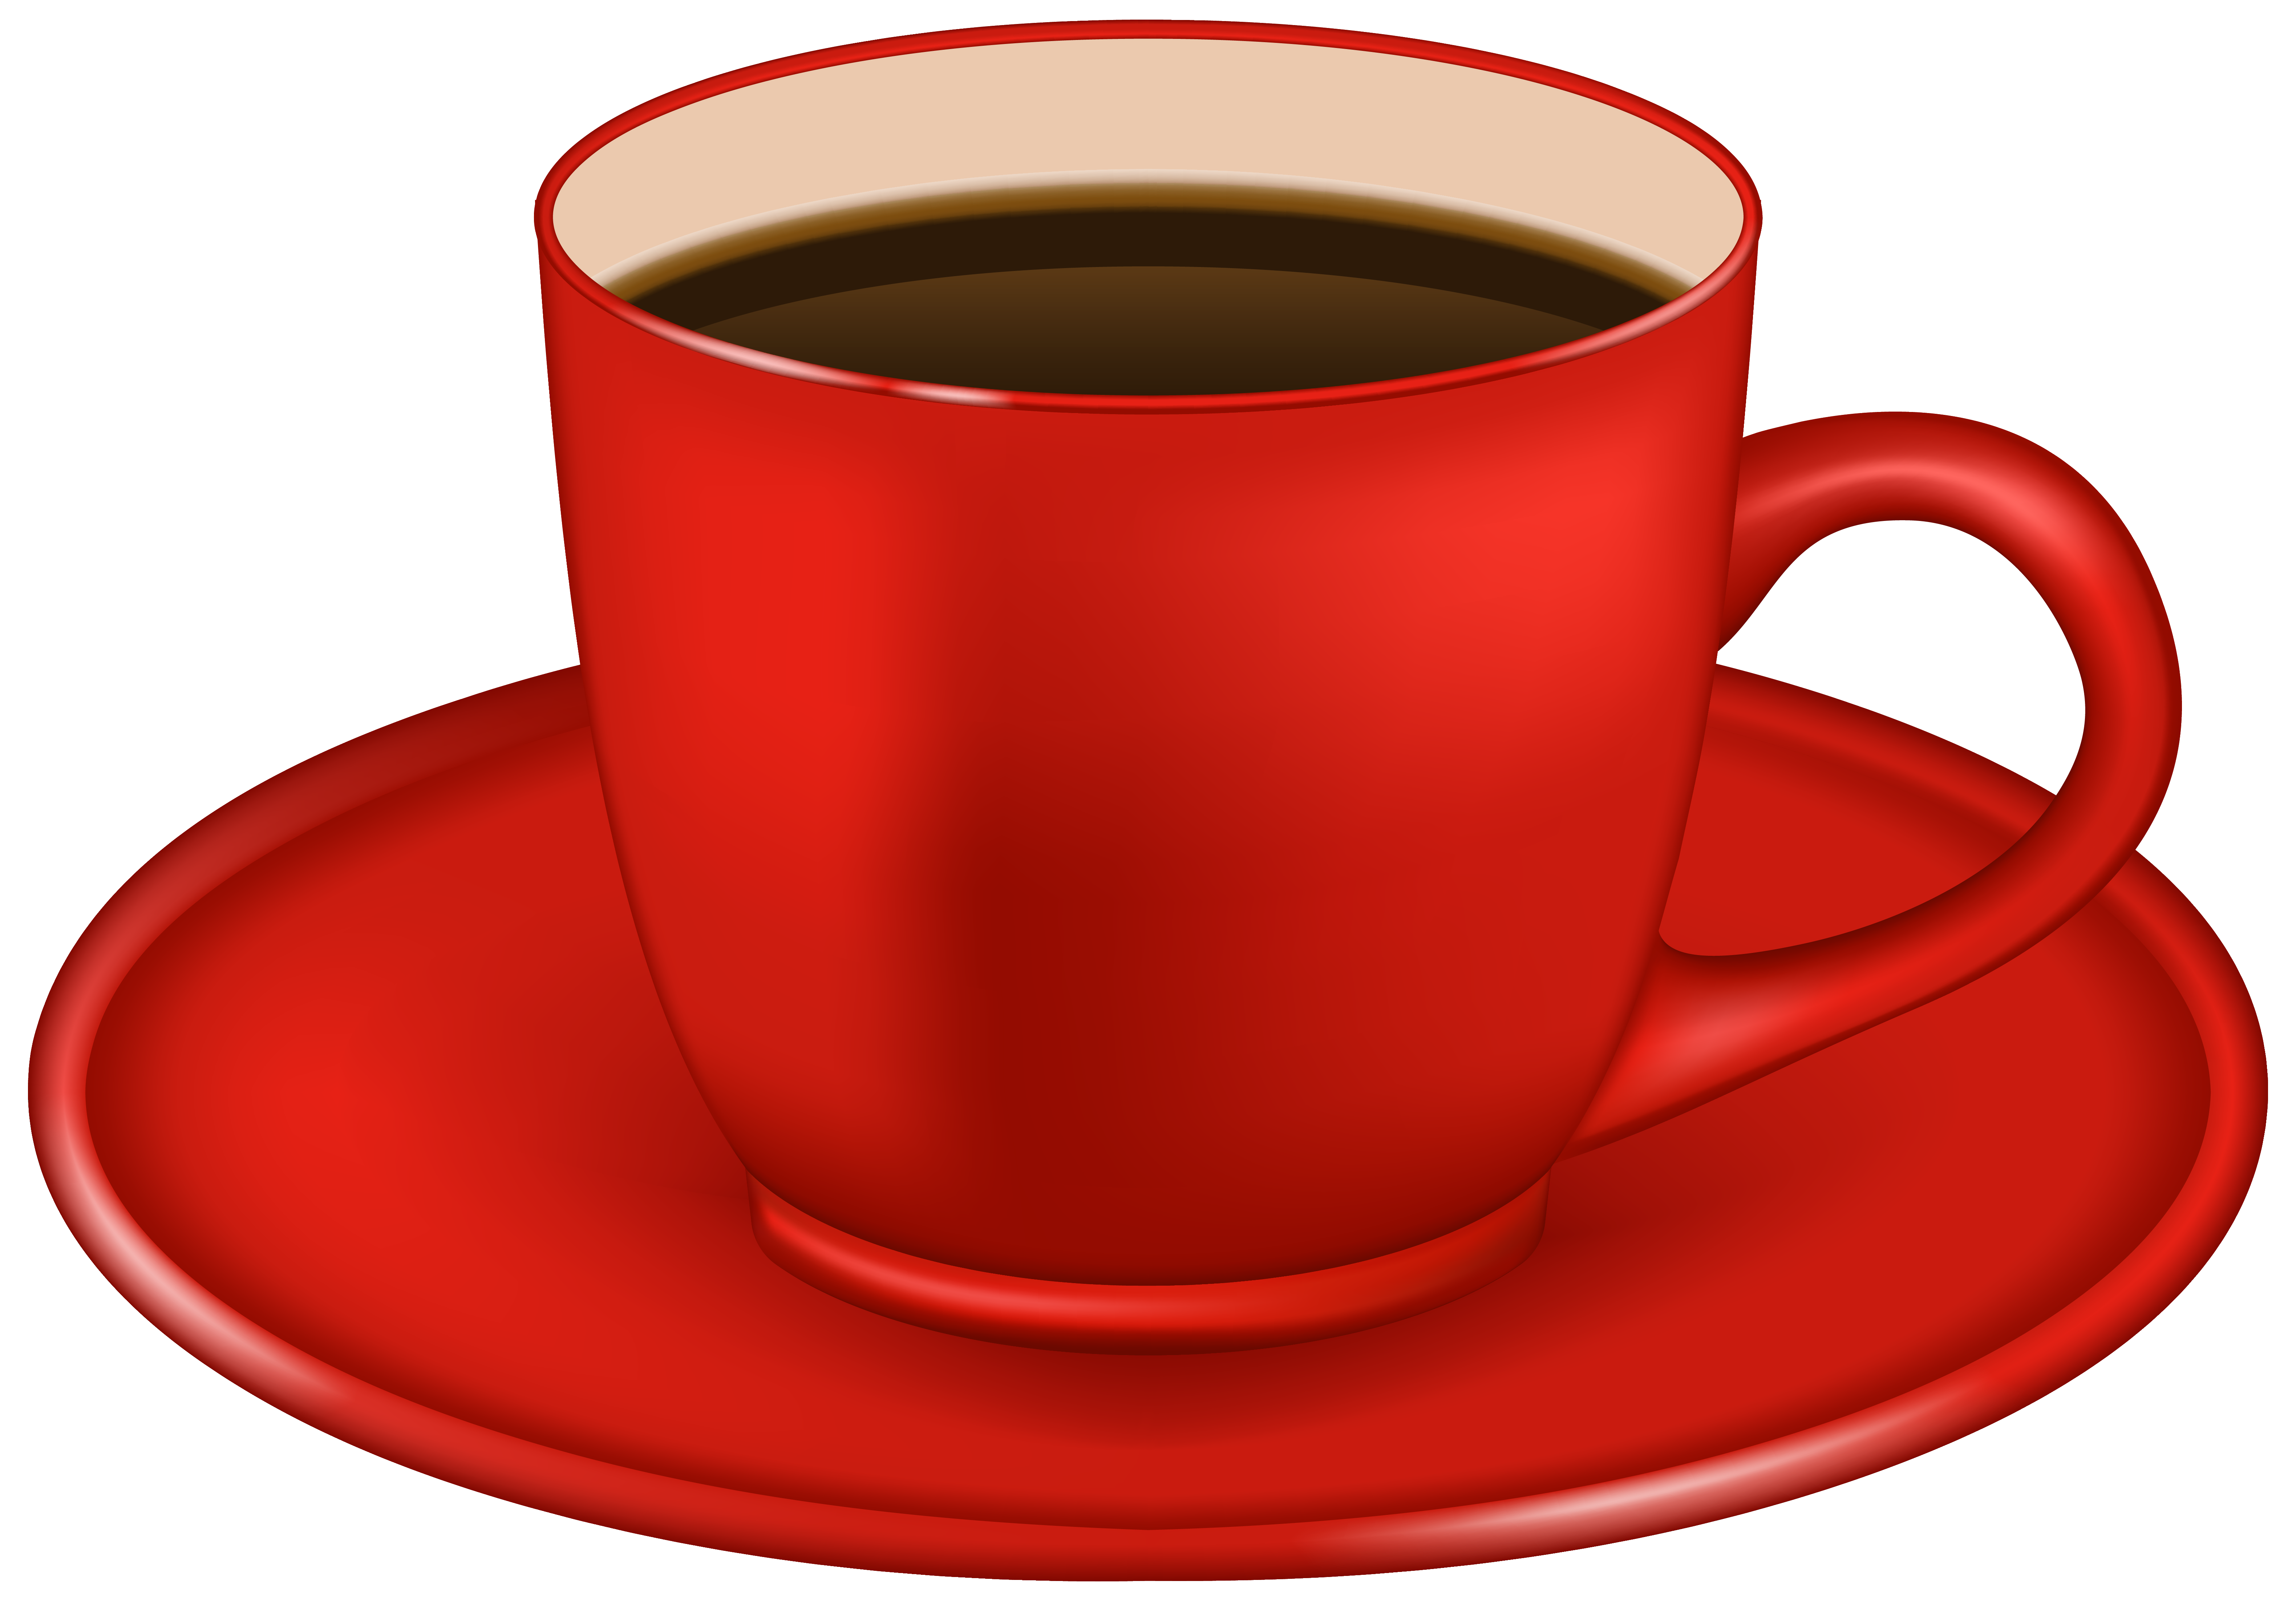 Hot mug of pumpkin latte transparent clipart vector free Red_Coffee_Cup_PNG_Clipart_Image.png (6321×4407) | Coffee, Mocha ... vector free